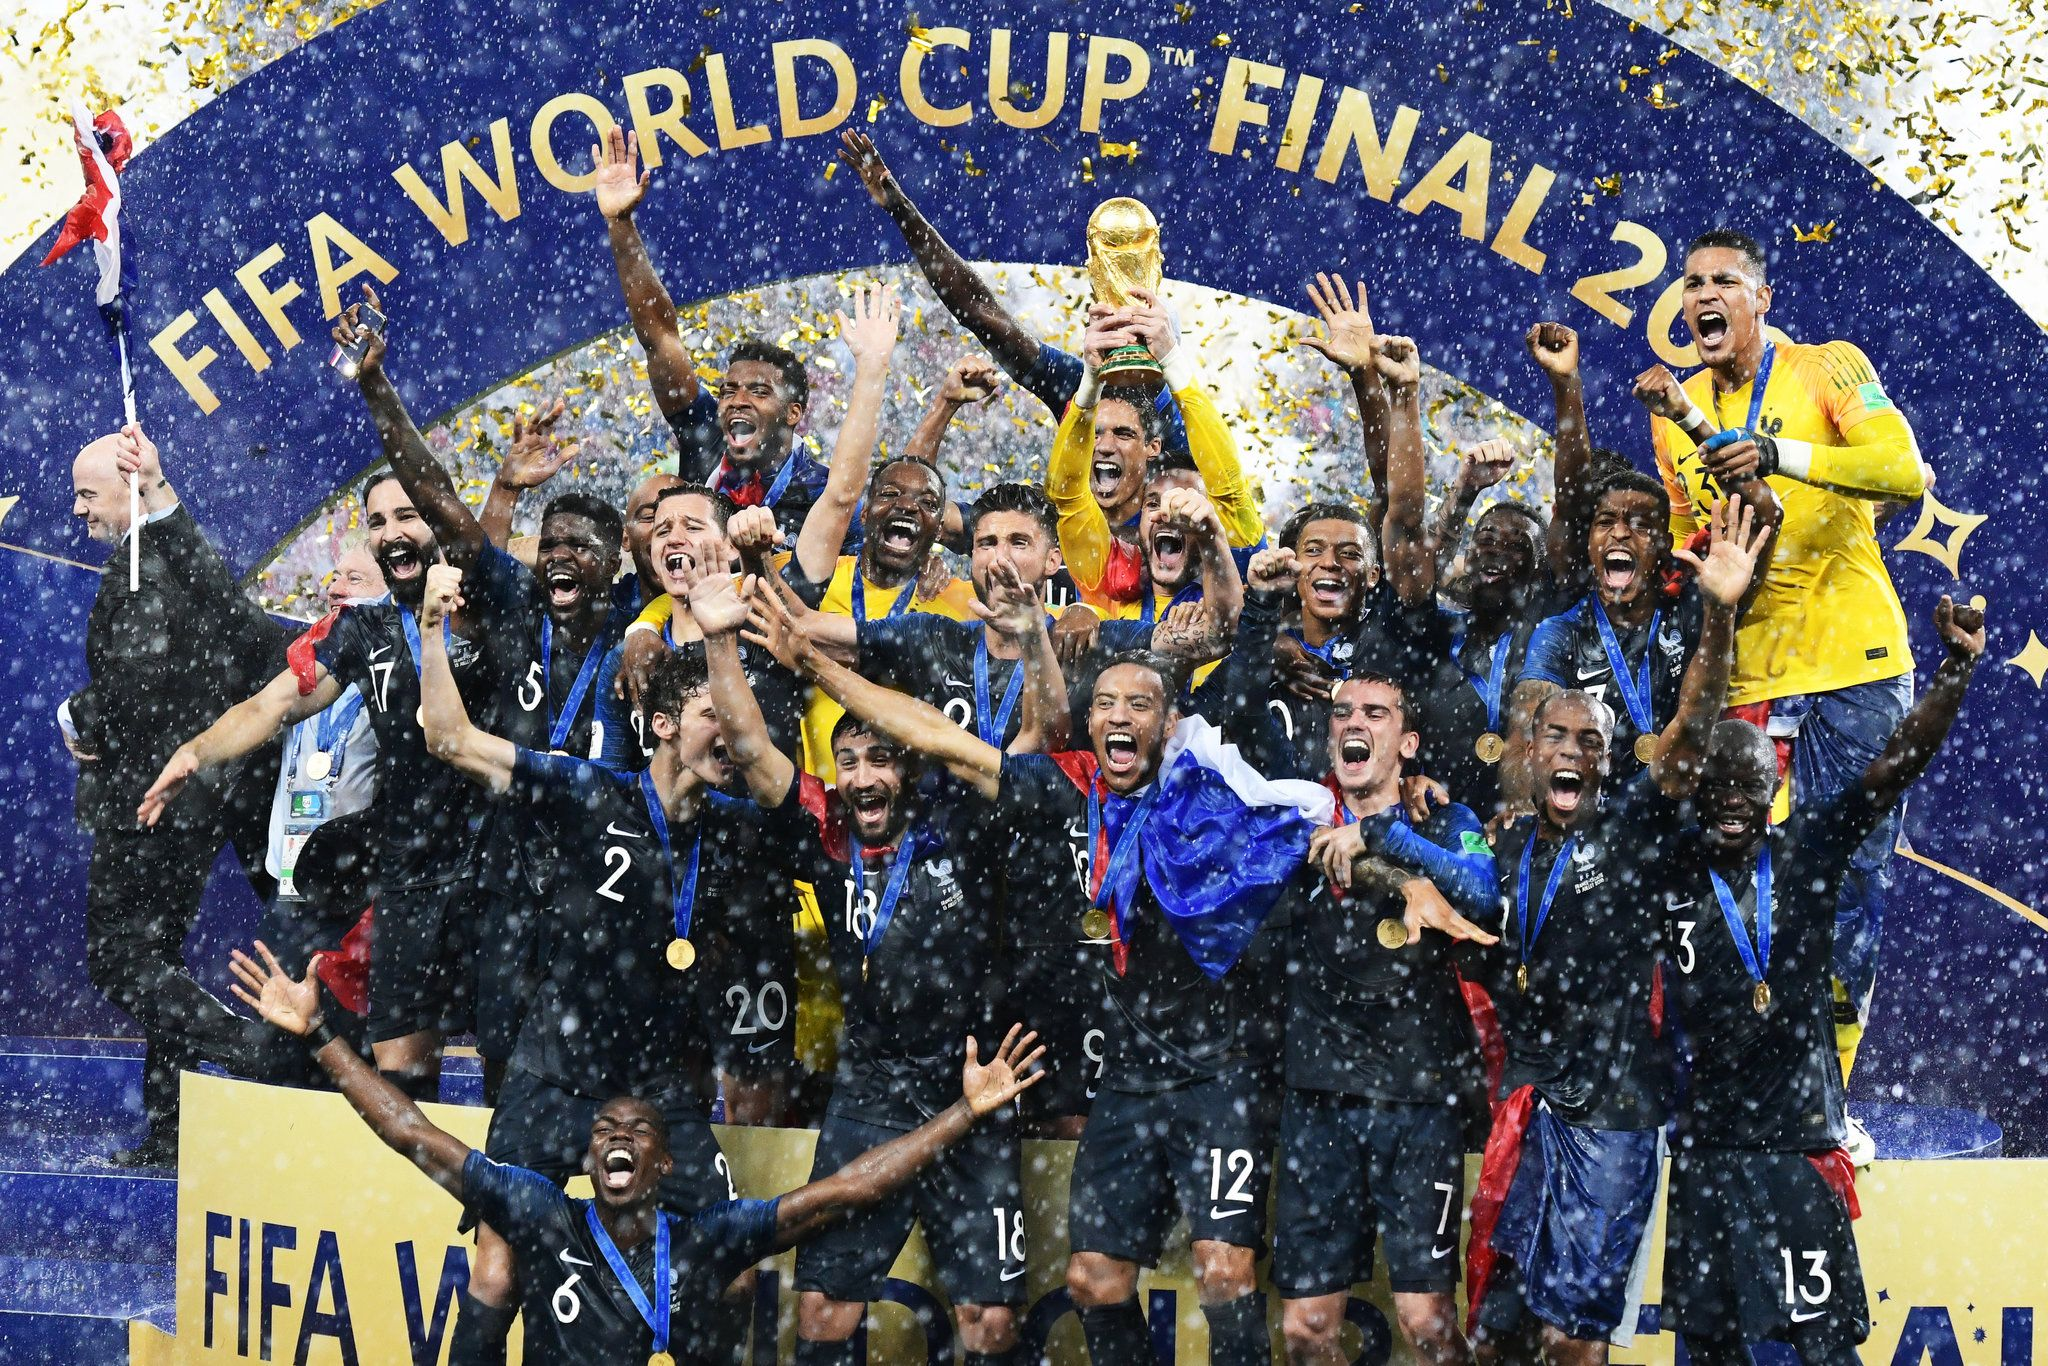 France A World Cup Champion That Stood Above It All In Russia World Cup Champions World Cup Winners World Cup Final 2018